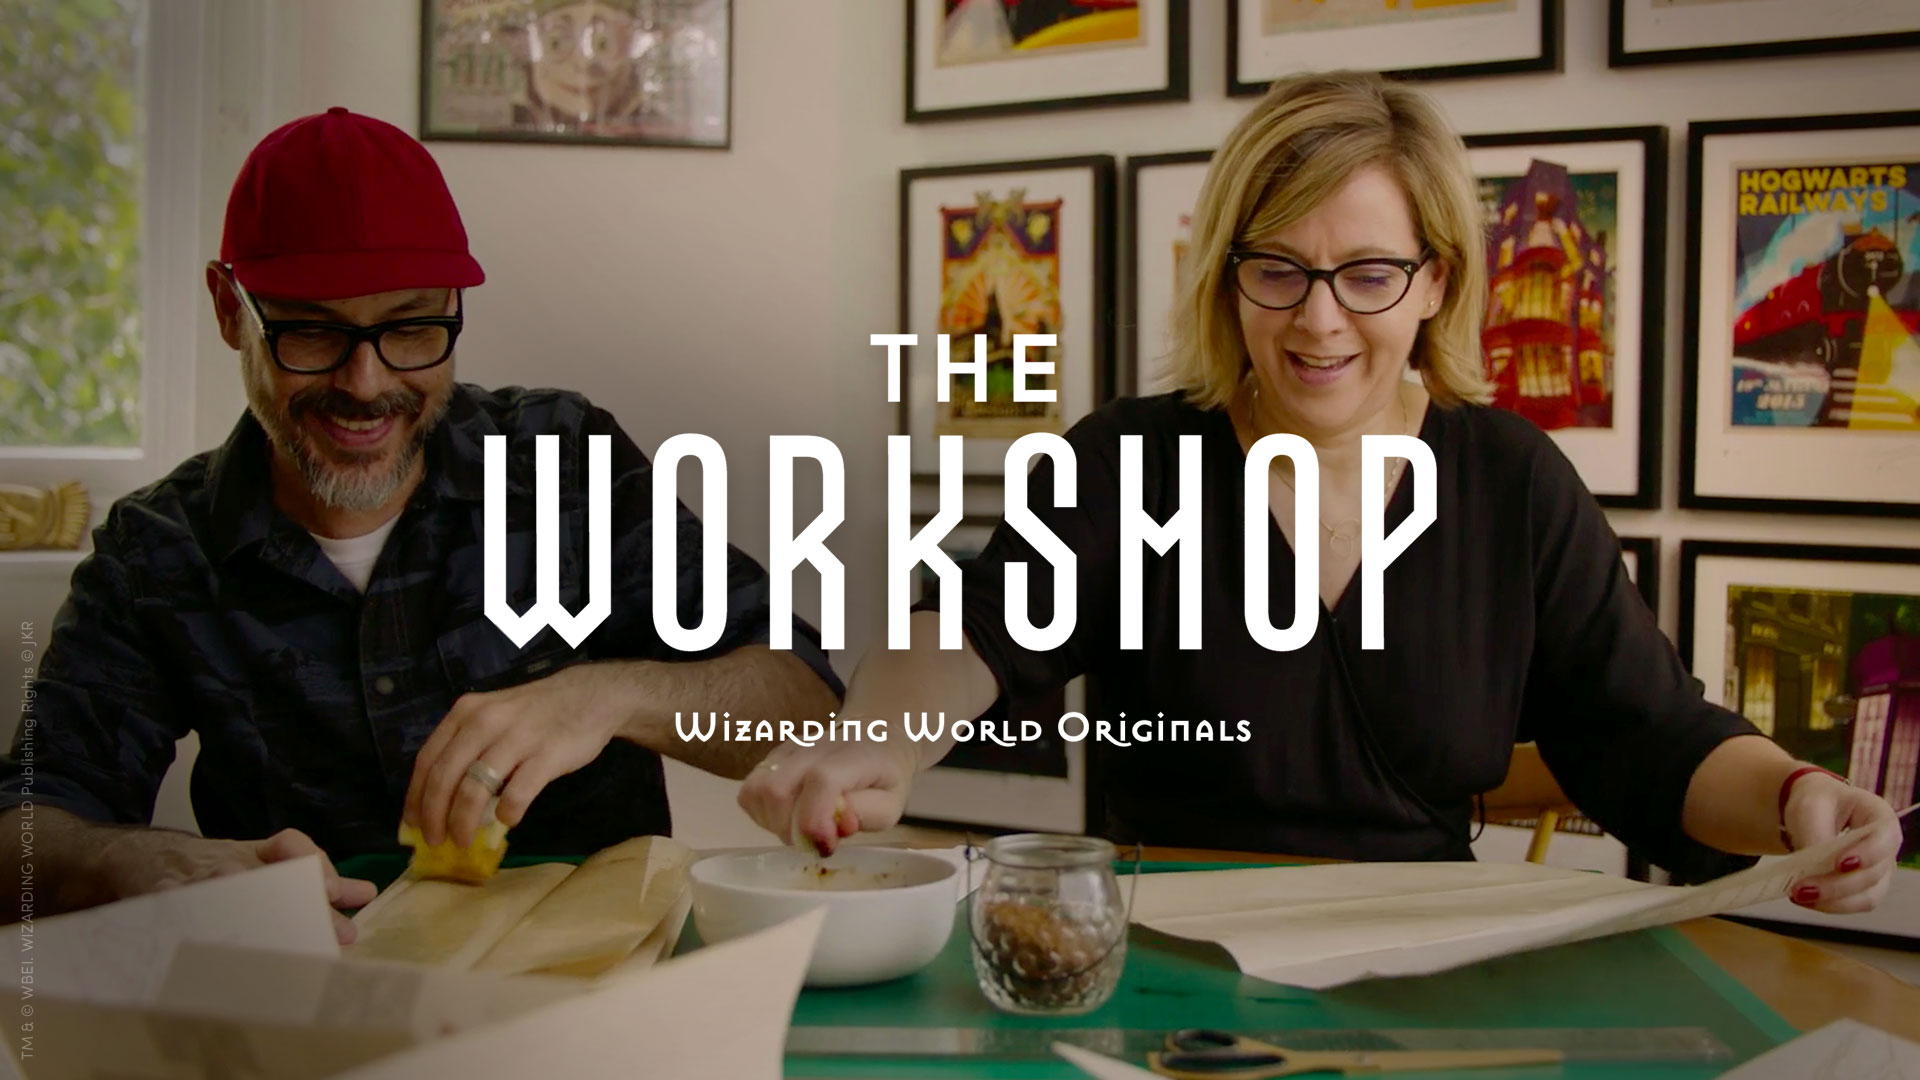 """The Workshop"" is the first of the ""Wizarding World Originals"" and features the graphic design team MinaLima."